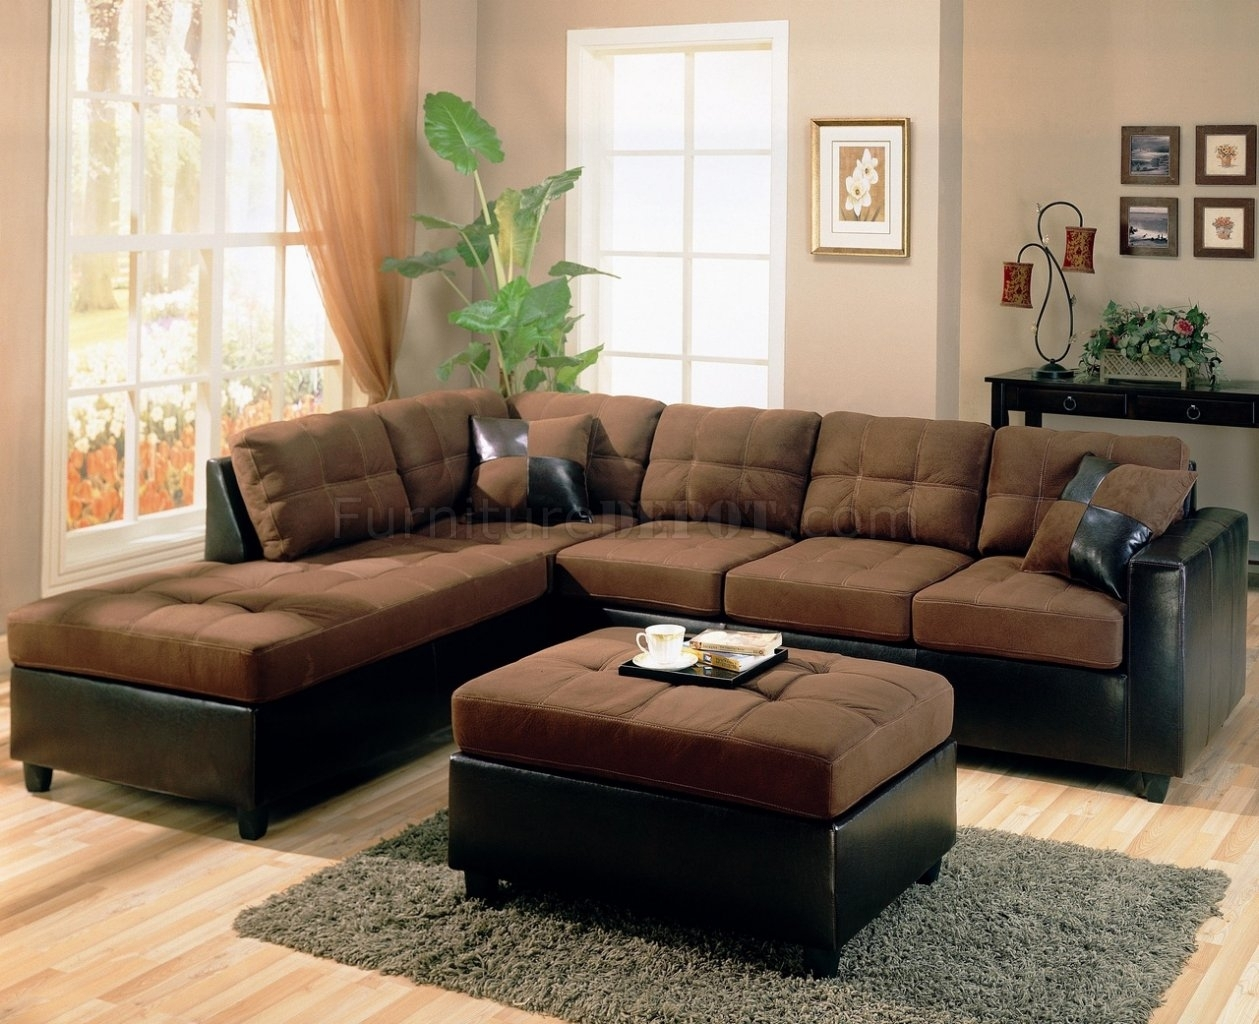 Attractive Chocolate Brown Sectional Sofas 24 In Jennifer Sofas And inside Chocolate Brown Sectional Sofas (Image 1 of 10)